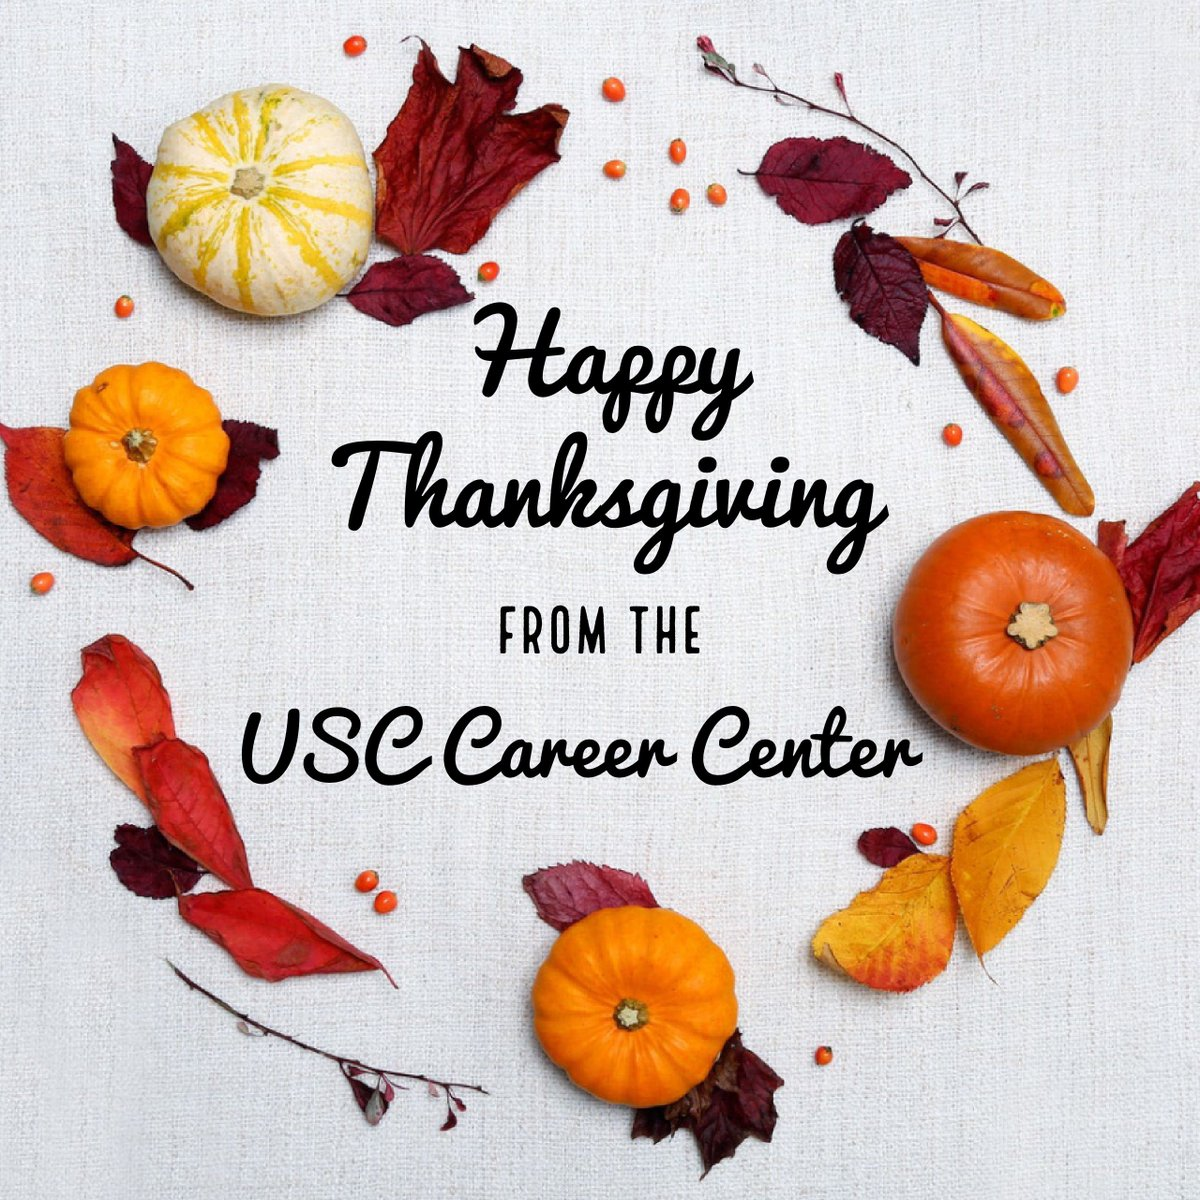 usc career center usccareercenter twitter